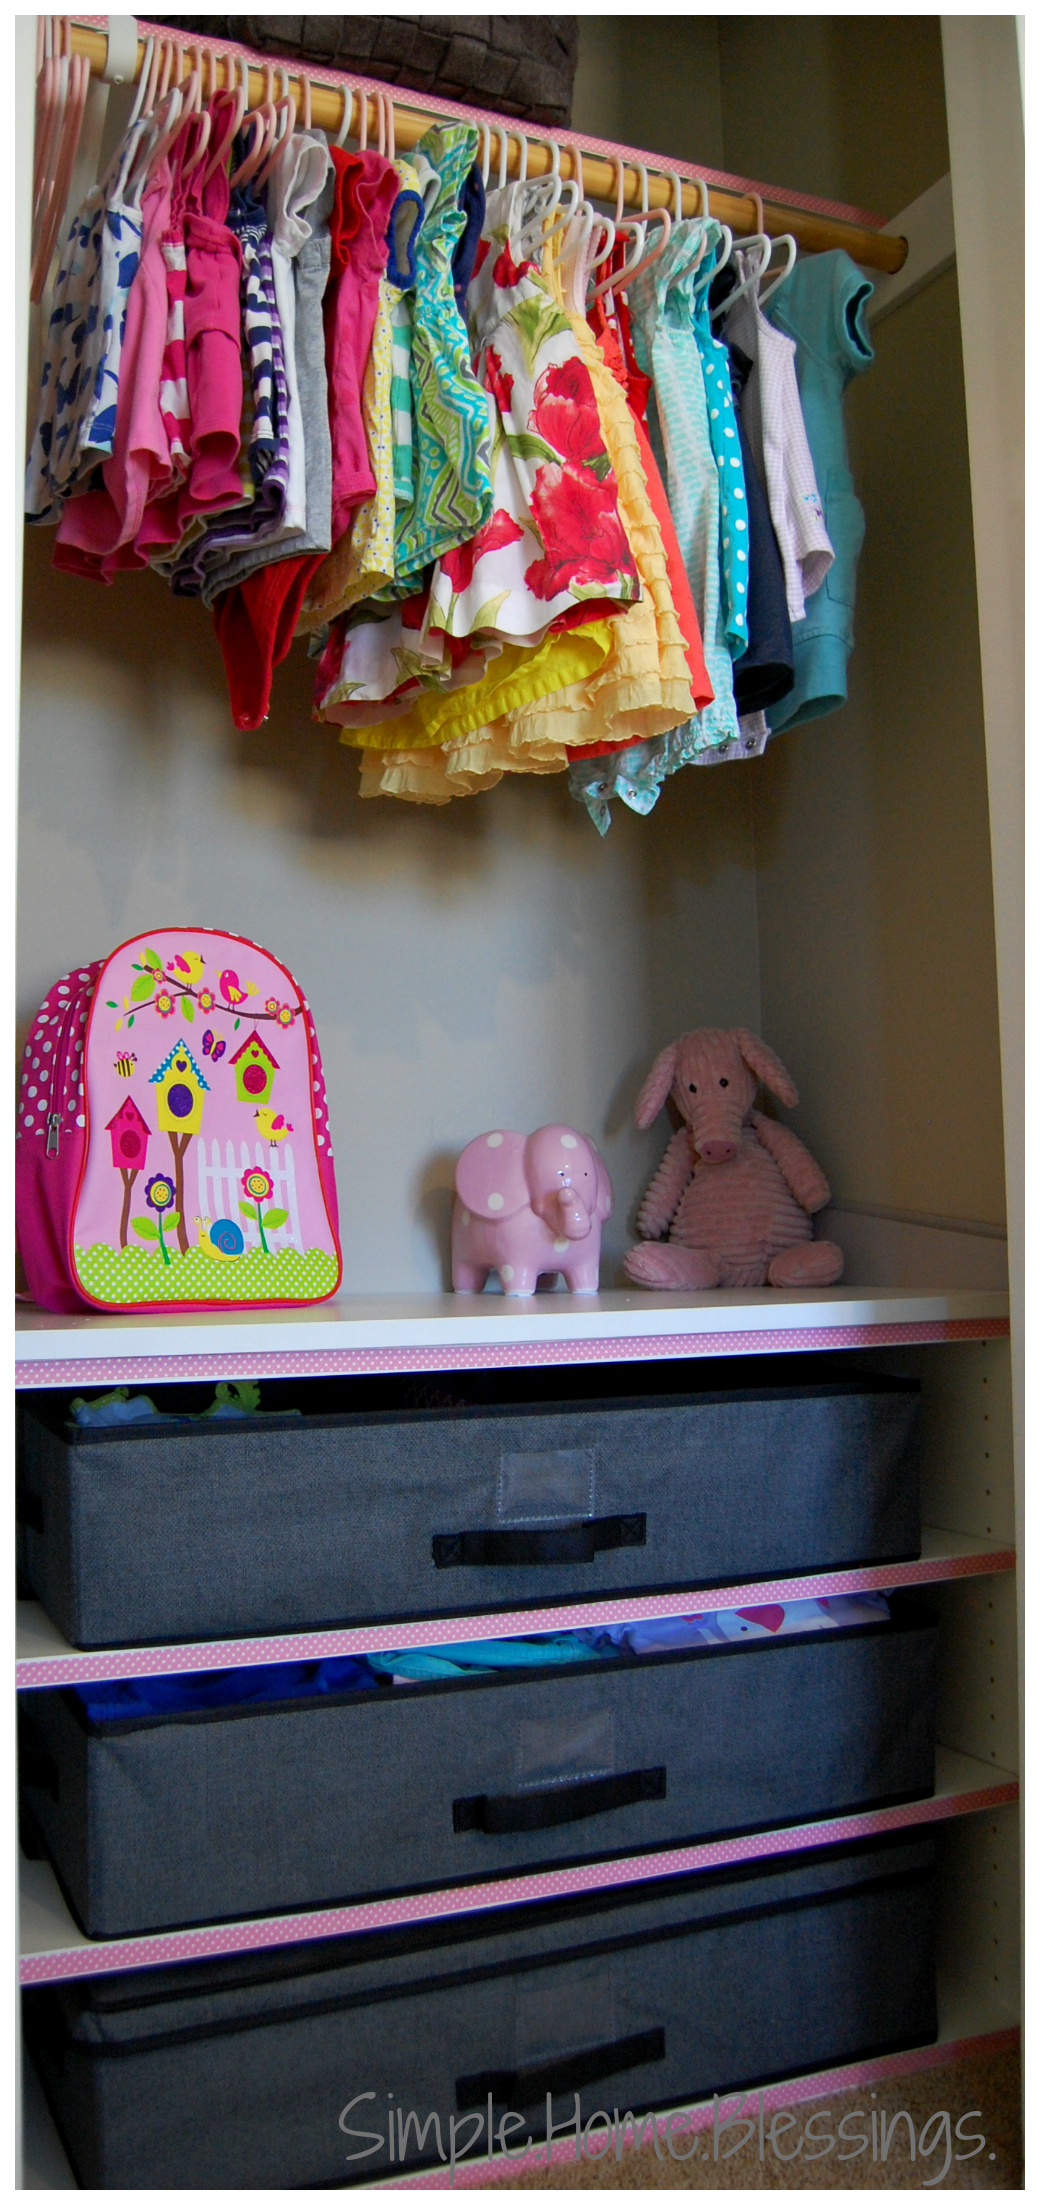 This Is Wu0027s Side Girls Shared Closet Reveal   Simple Closet Makeover